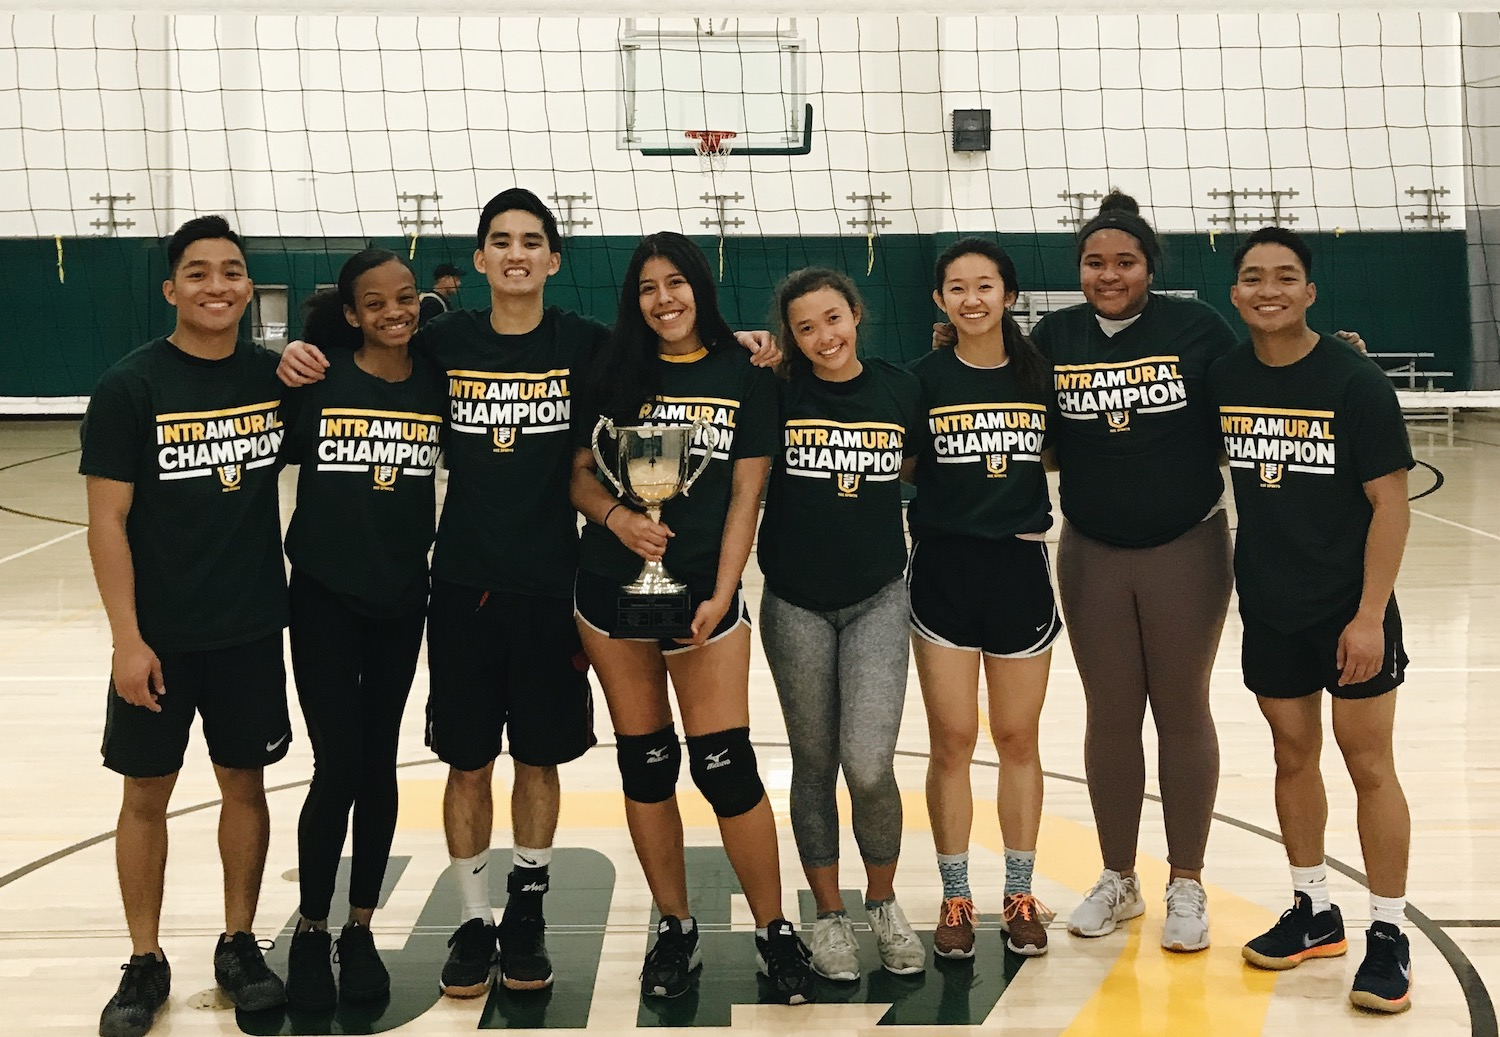 Fall 2019 Volleyball Champion Block Party Standing Together with Trophy